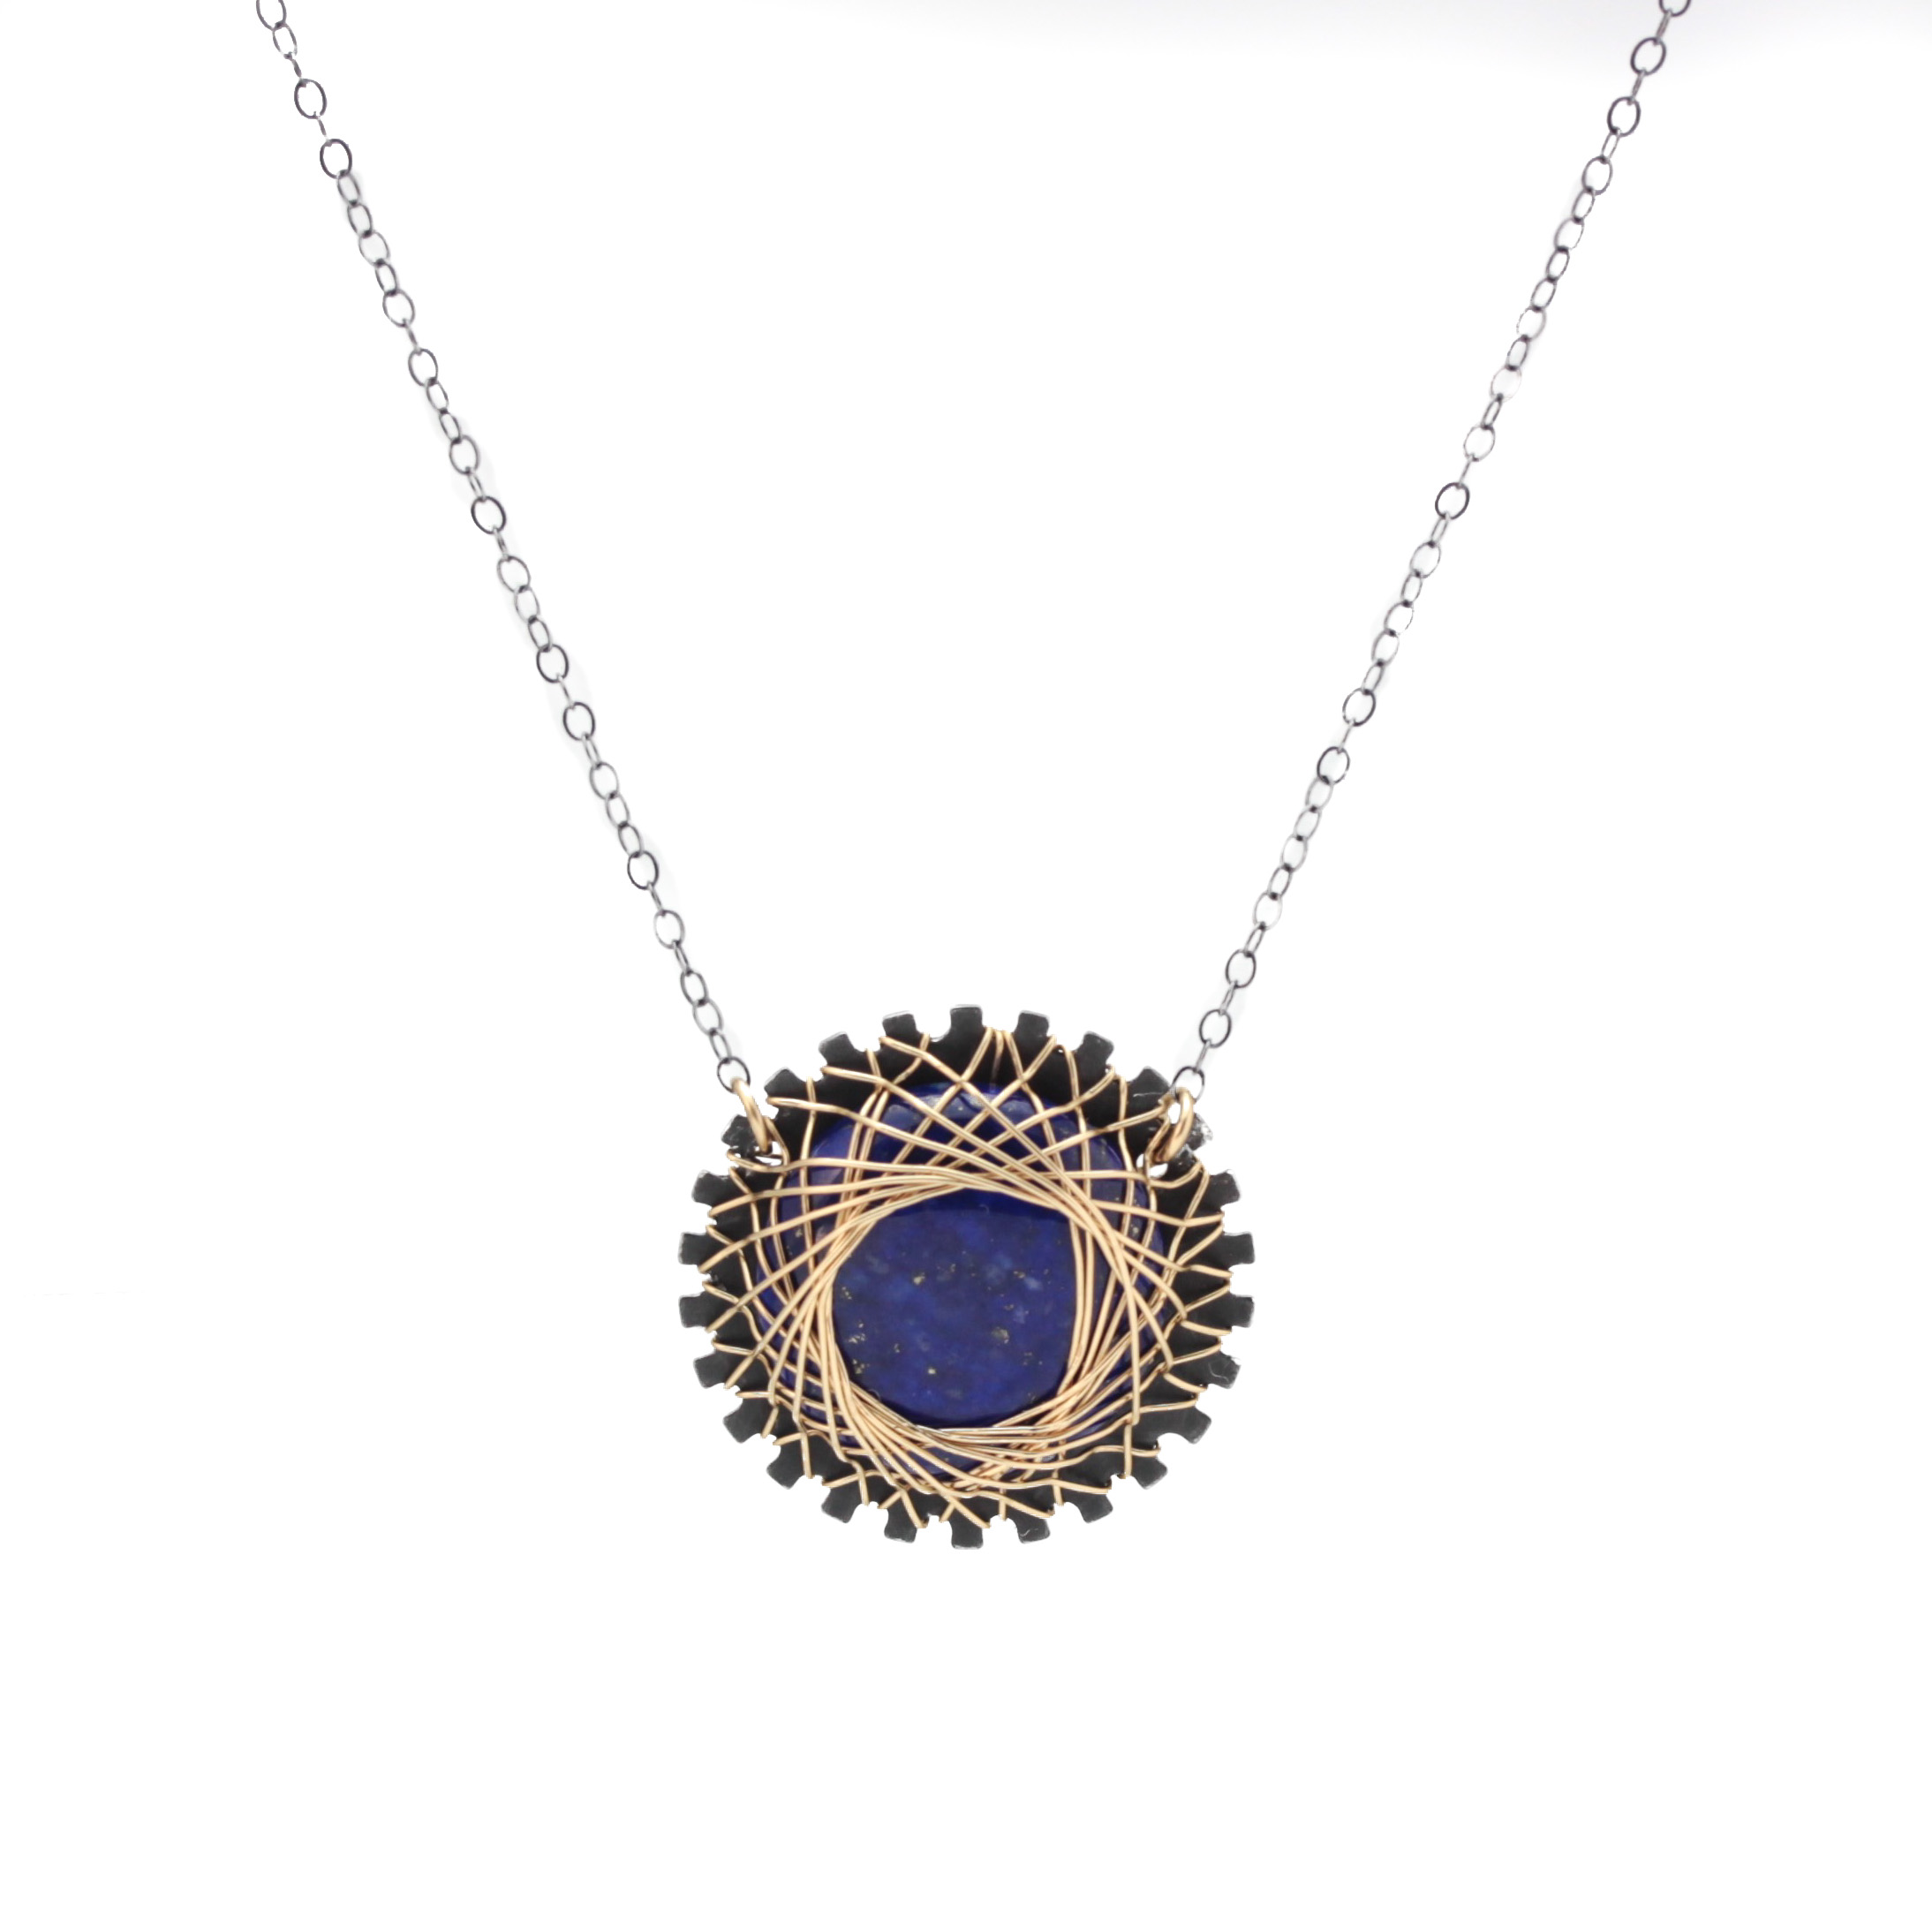 Sterling Silver and gold necklace (1 of 1) - Kendra Jones.jpg